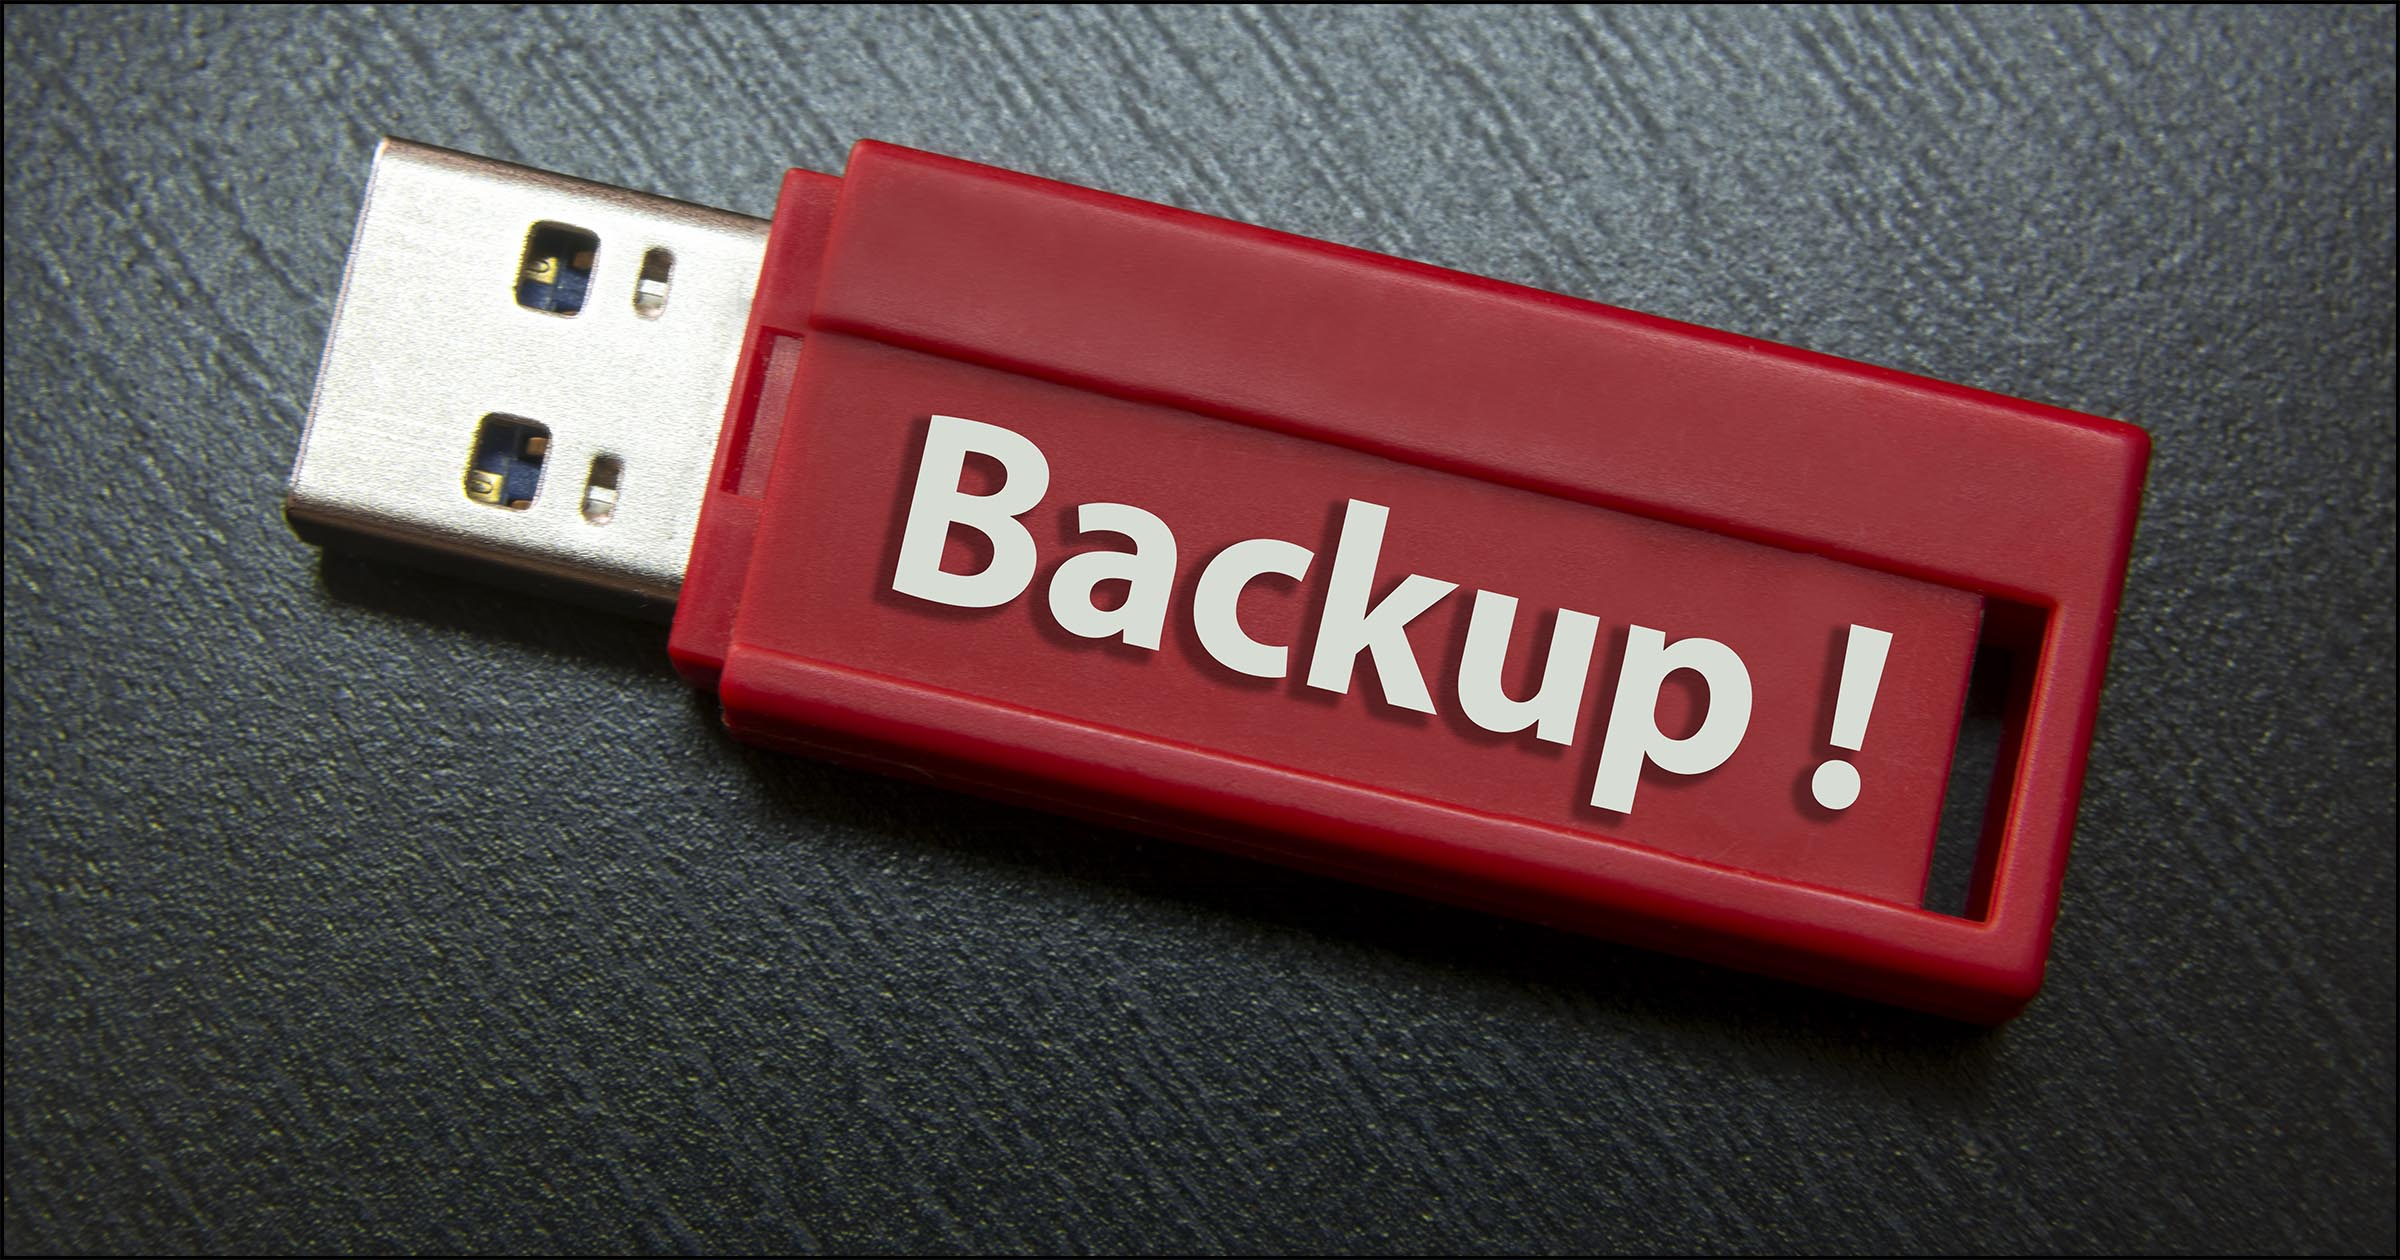 Backup Flash Drive